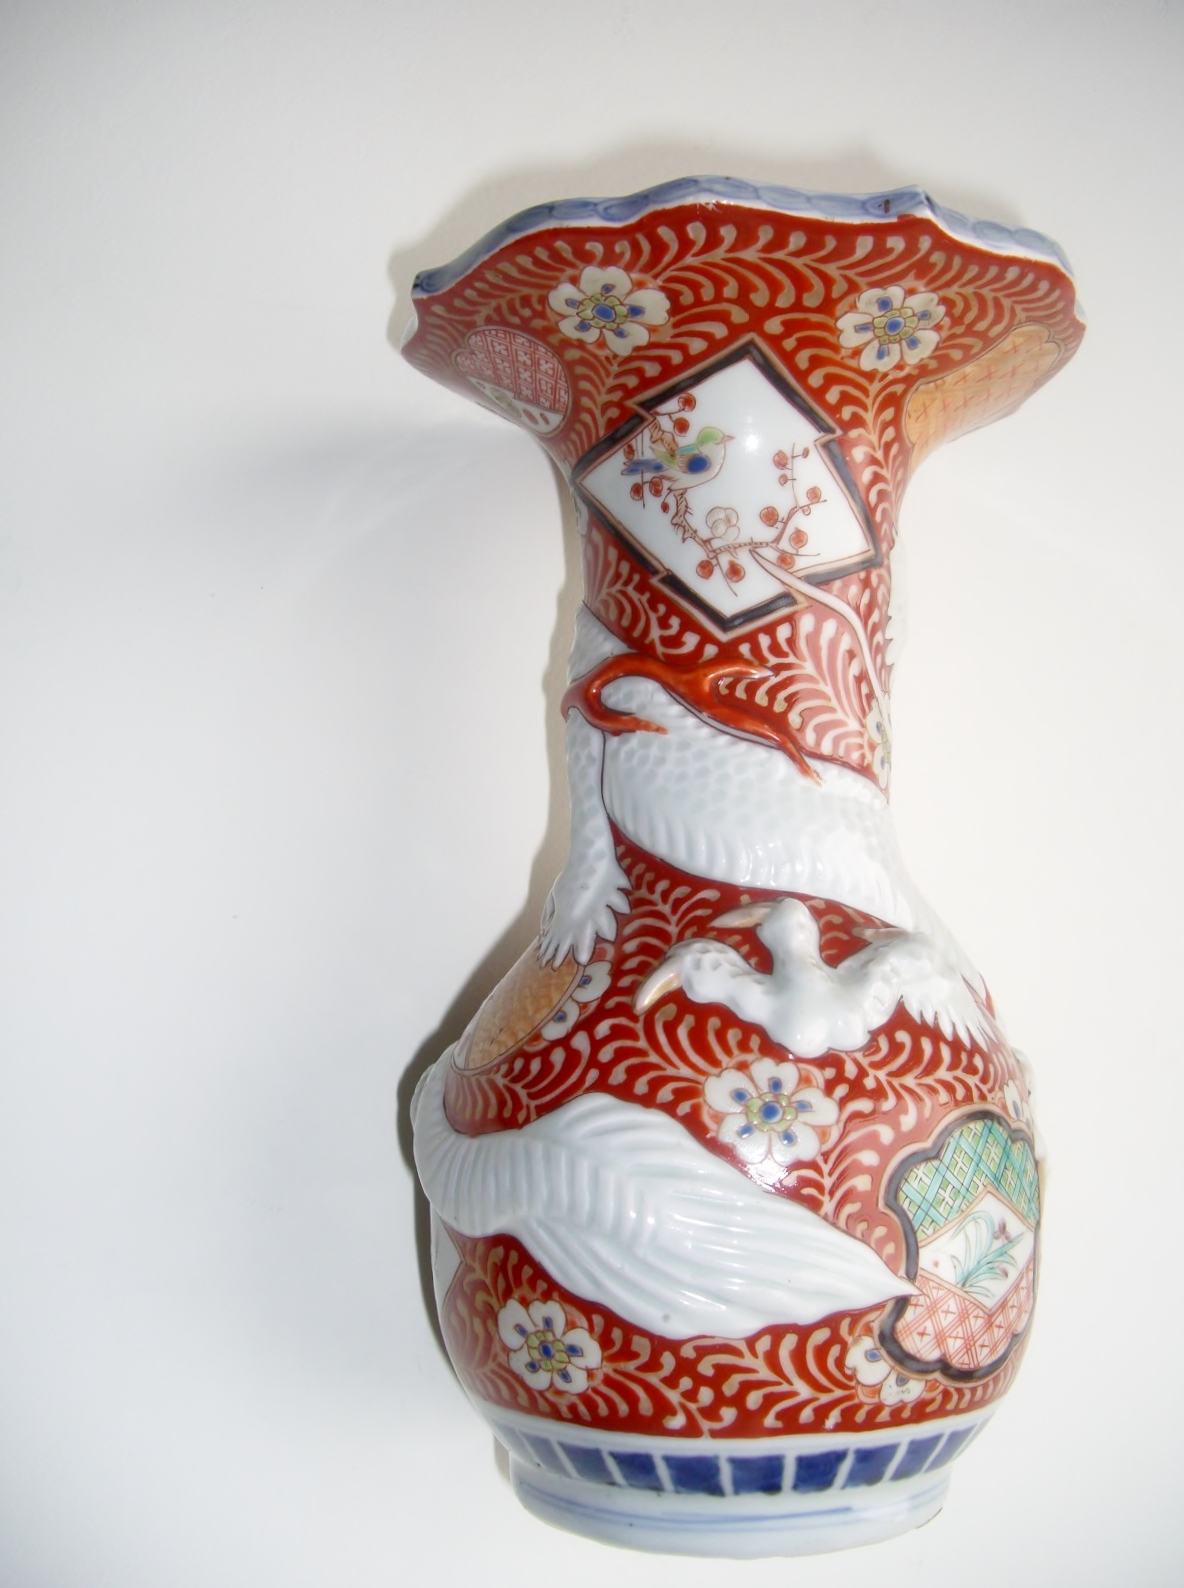 Japanese imari arita dragon vase antique for sale antiques japanese imari arita dragon vase antique for sale reviewsmspy